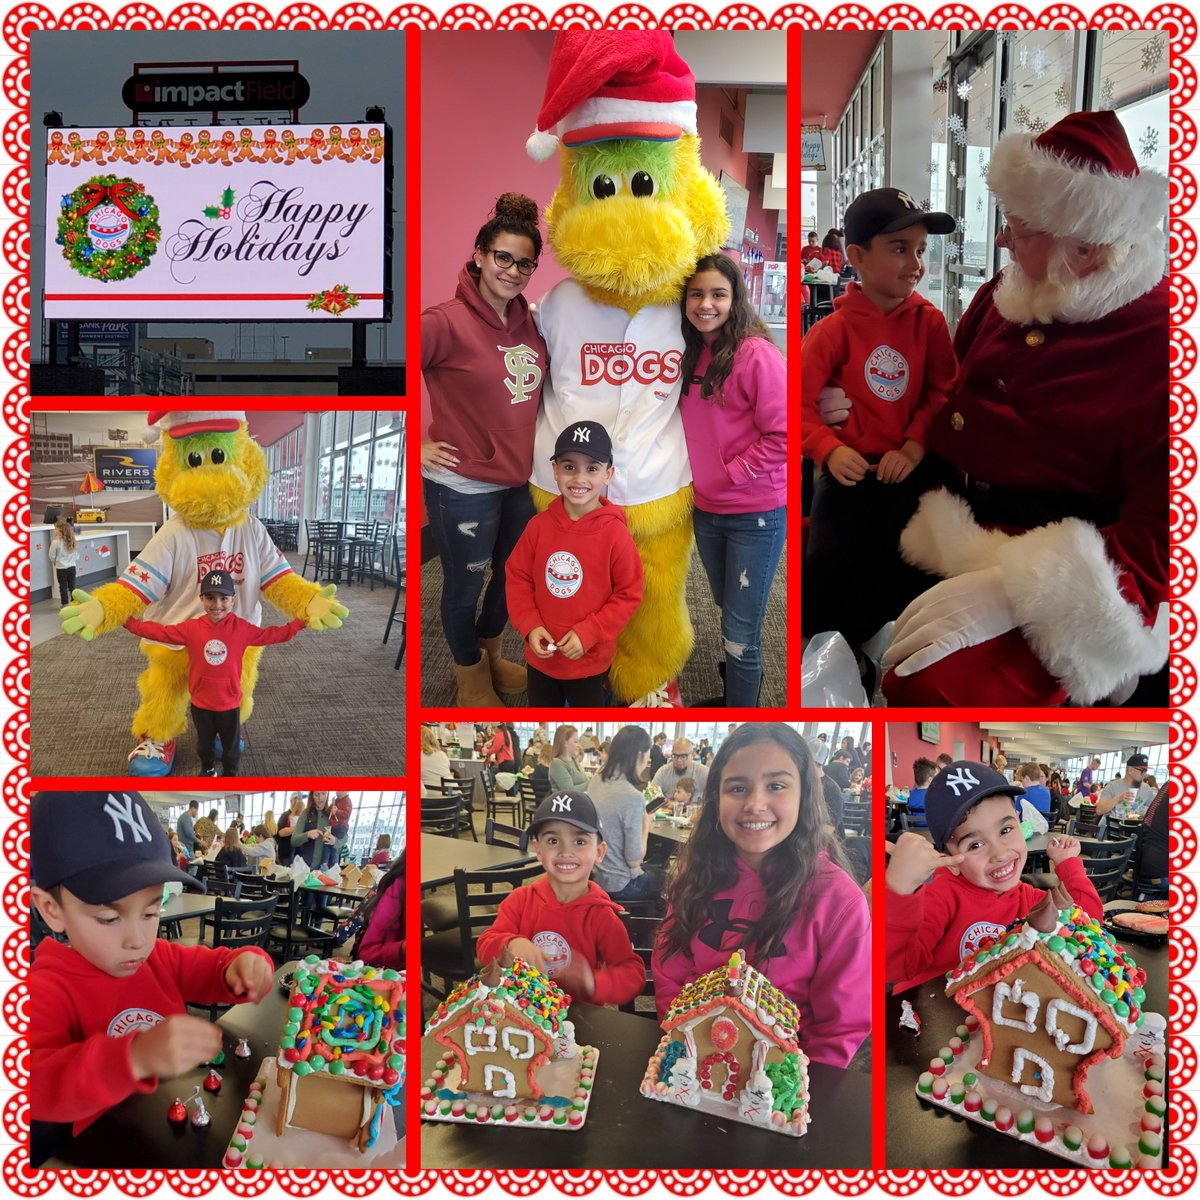 #FundaySunday with the family and the @TheChicagoDogs at their annual Holiday #gingerbread Decorating and Cookie Party#TakeaBite #HappyHolidays – at Impact Field